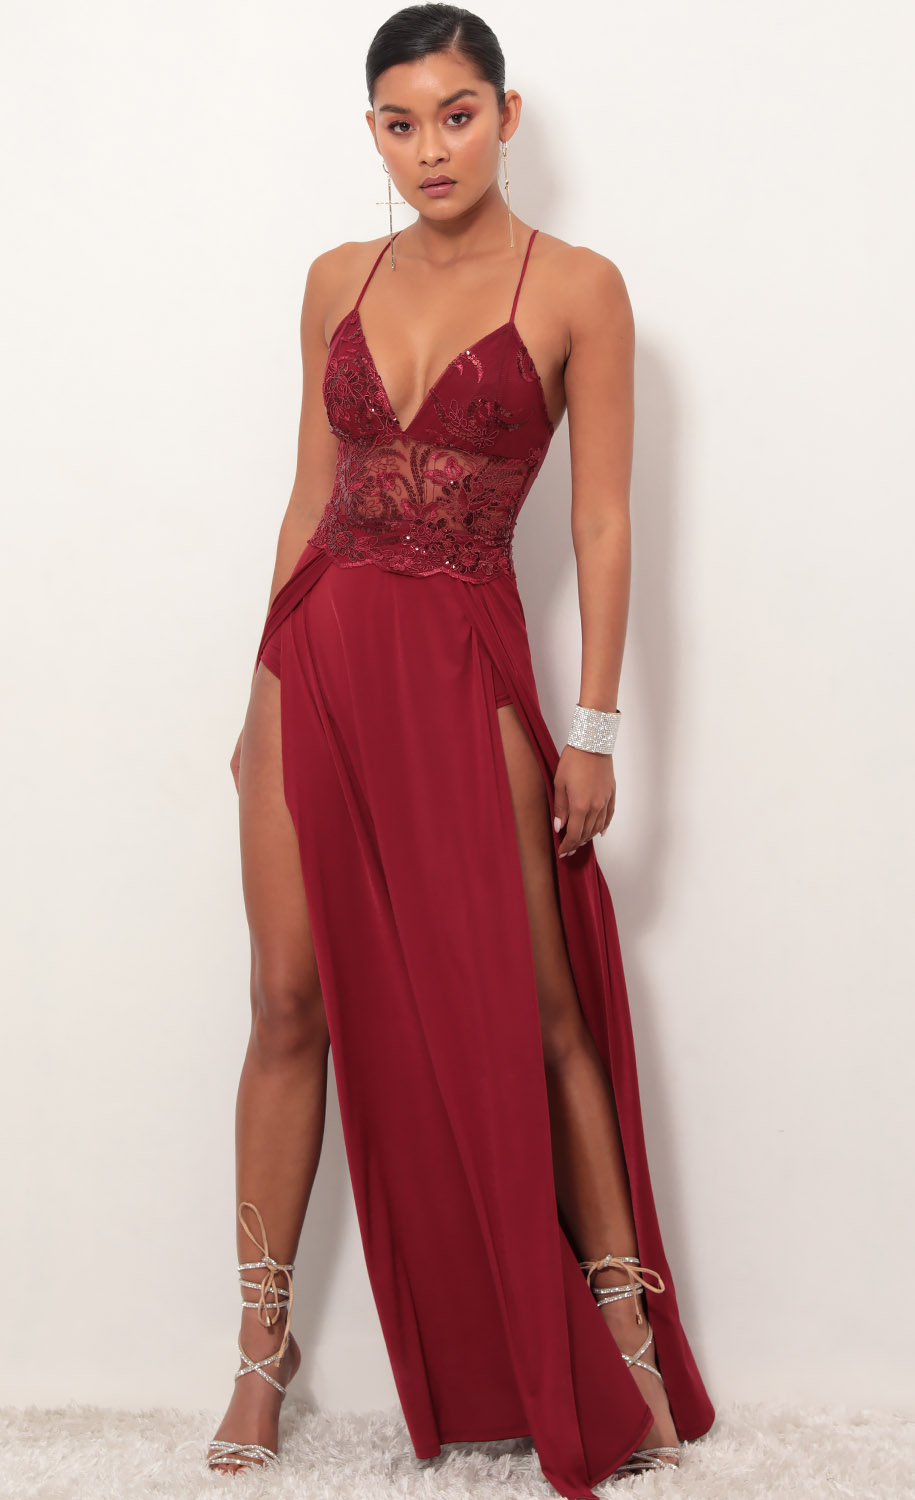 Tulum Lace Maxi Dress in Merlot